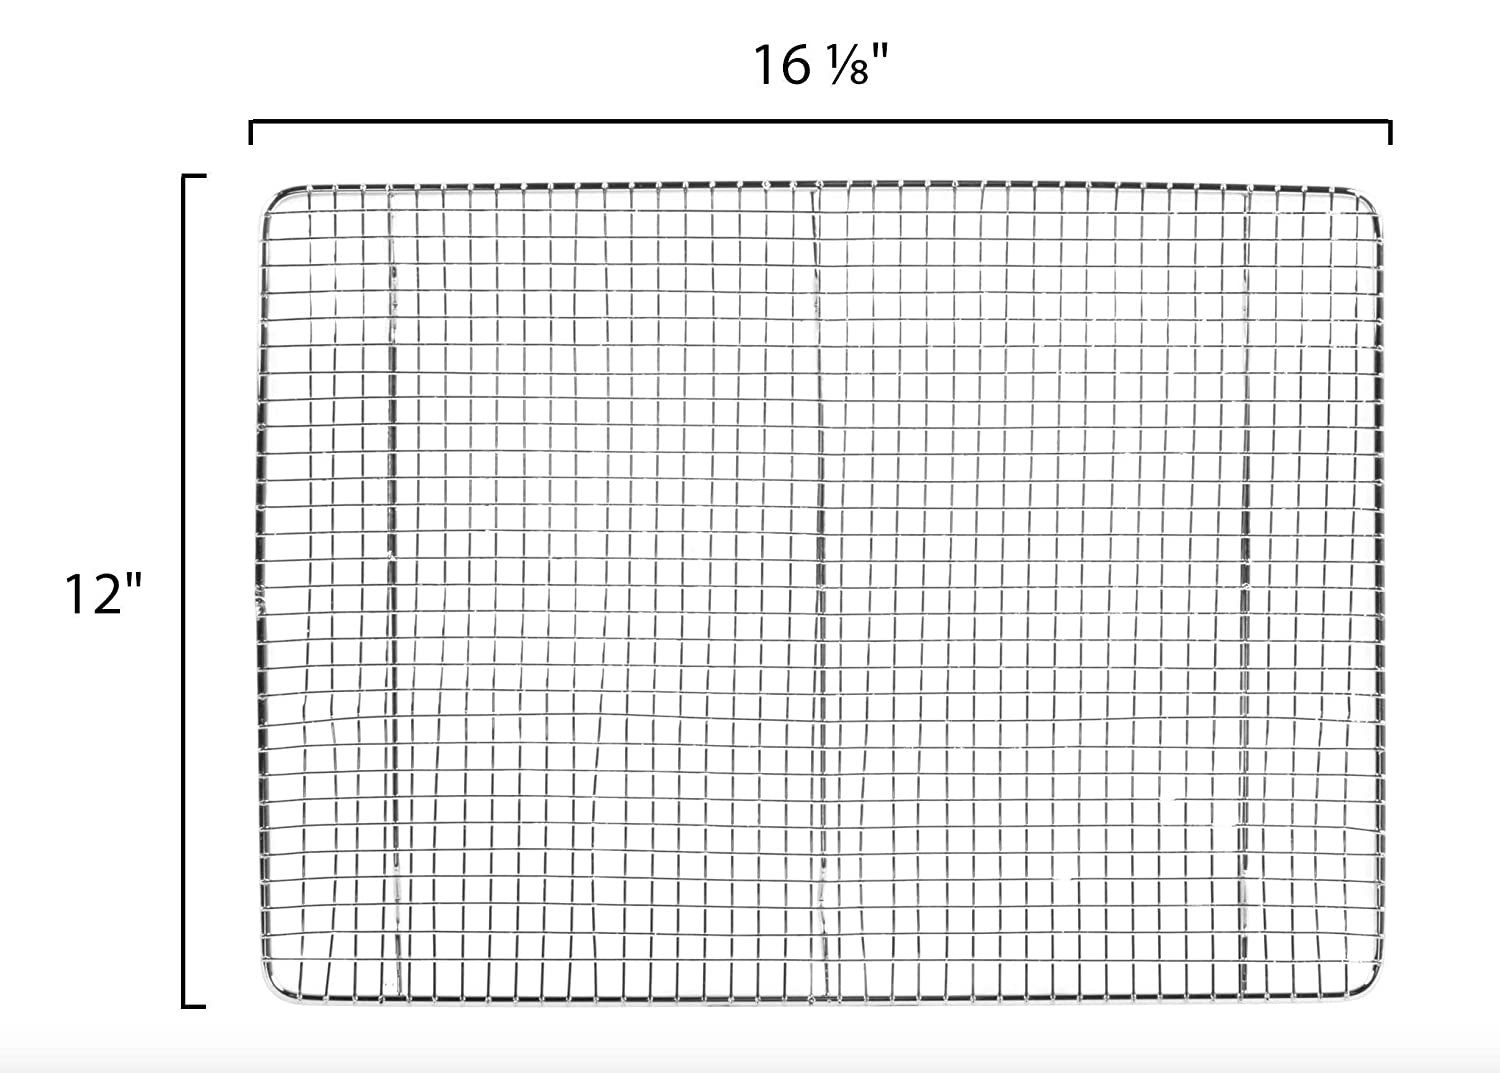 Professional Stainless Steel Wire Cross Cooling Rack Half Sheet Pan Grate 16 1//2 x 12 Drip Screen Set of 2 Heavy Duty Commercial Quality